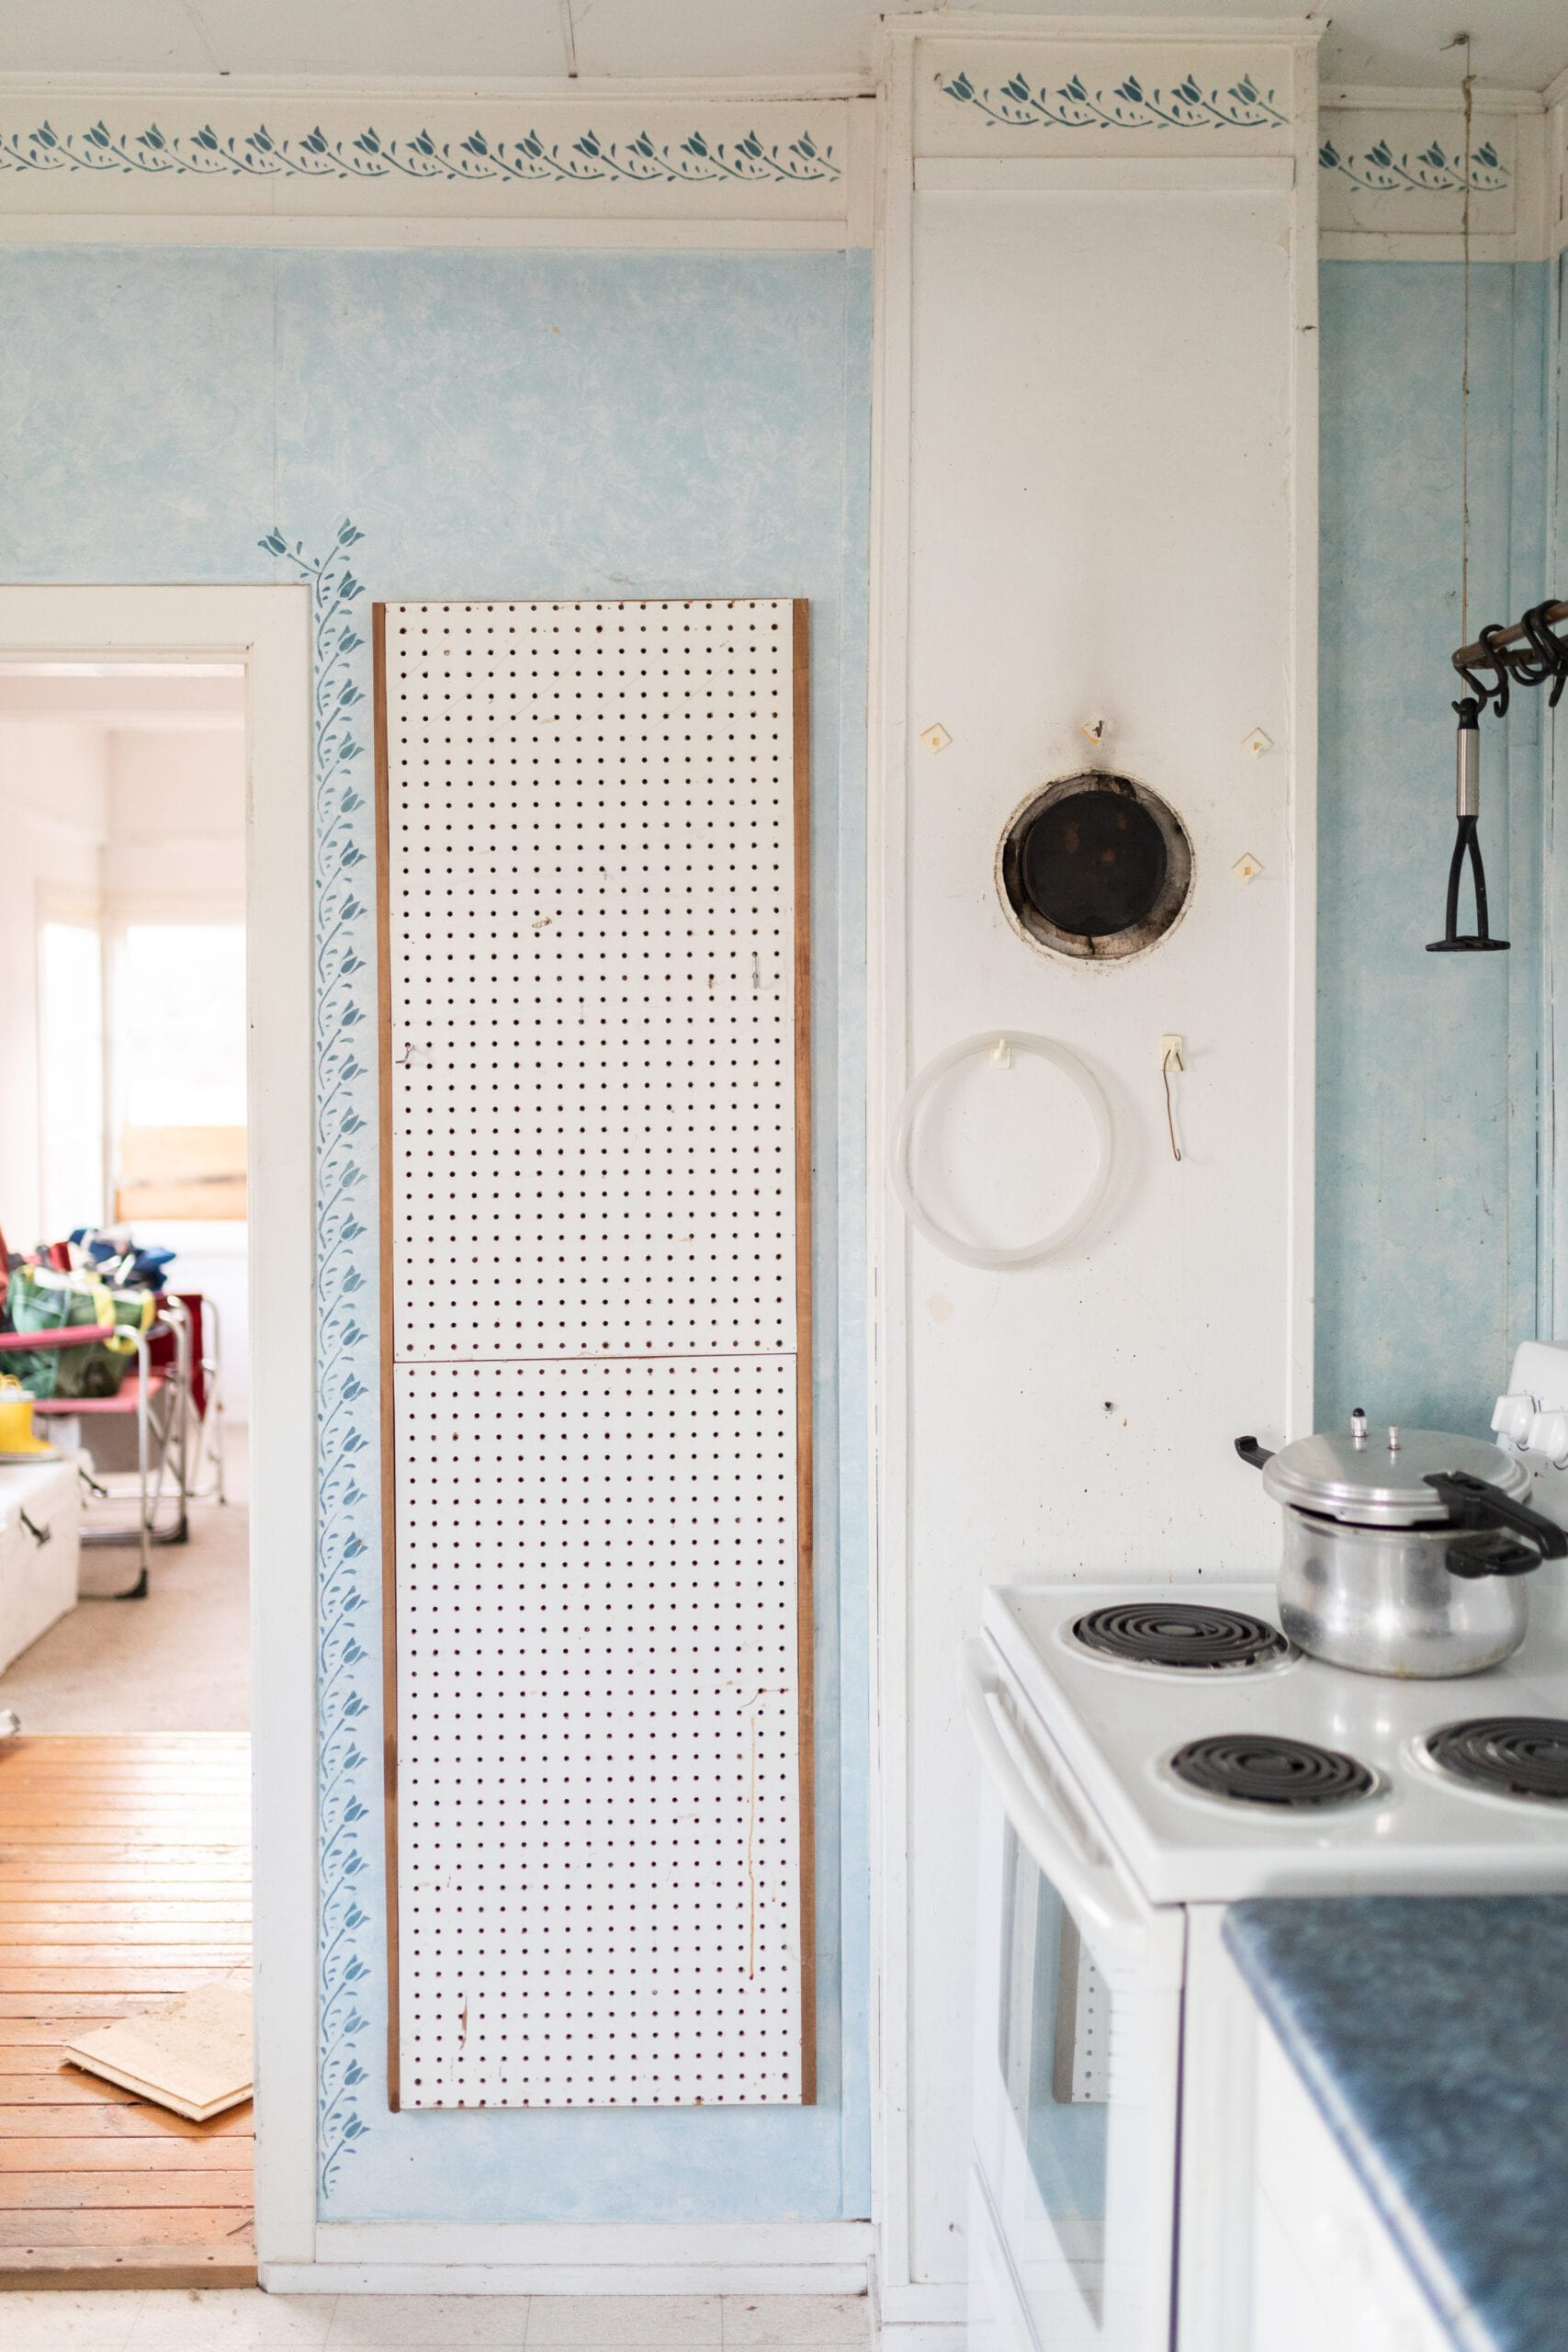 A kitchen wall in Jillian Harris and Justin Pasutto's Farmhouse before they started renovations.